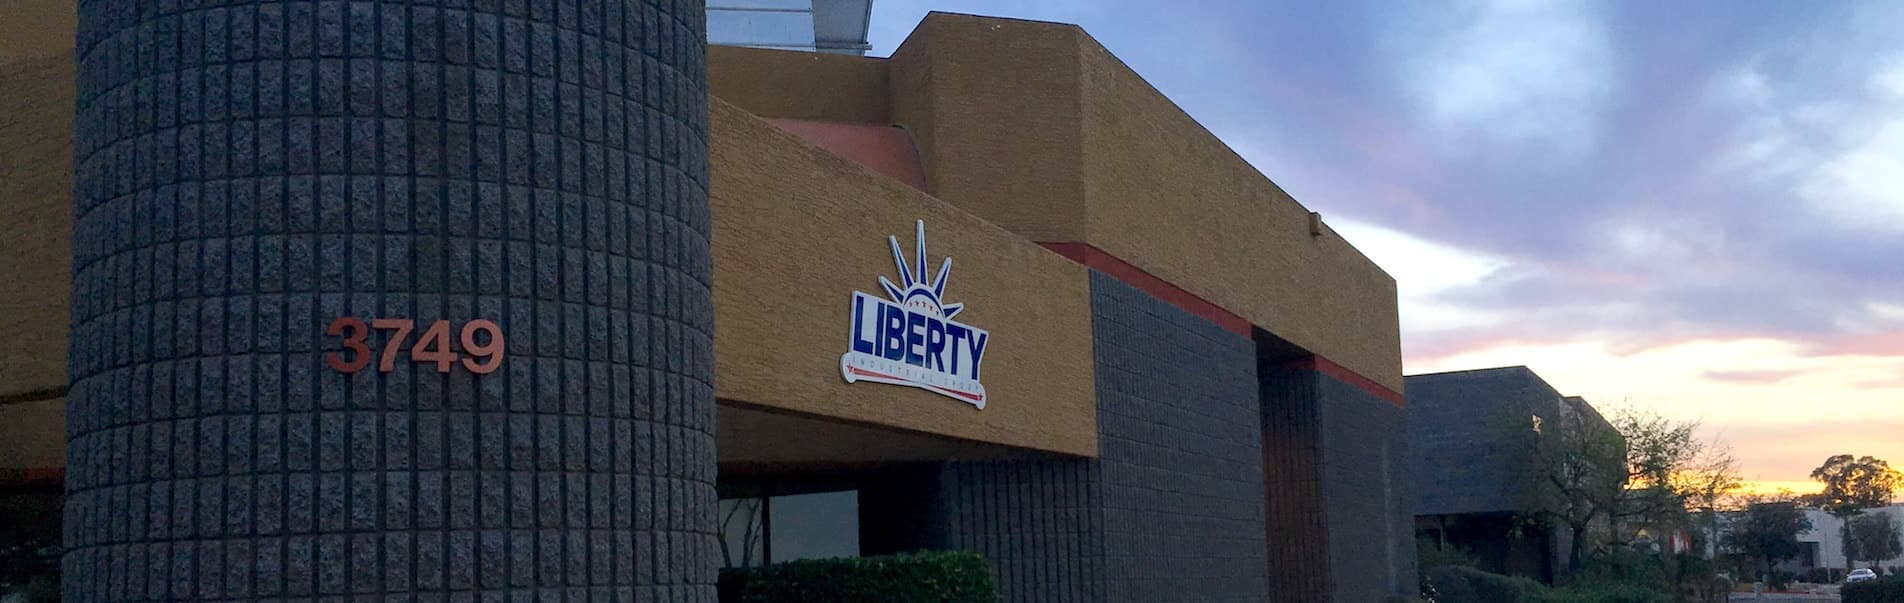 Liberty: one of the premier industrial scaffolding companies